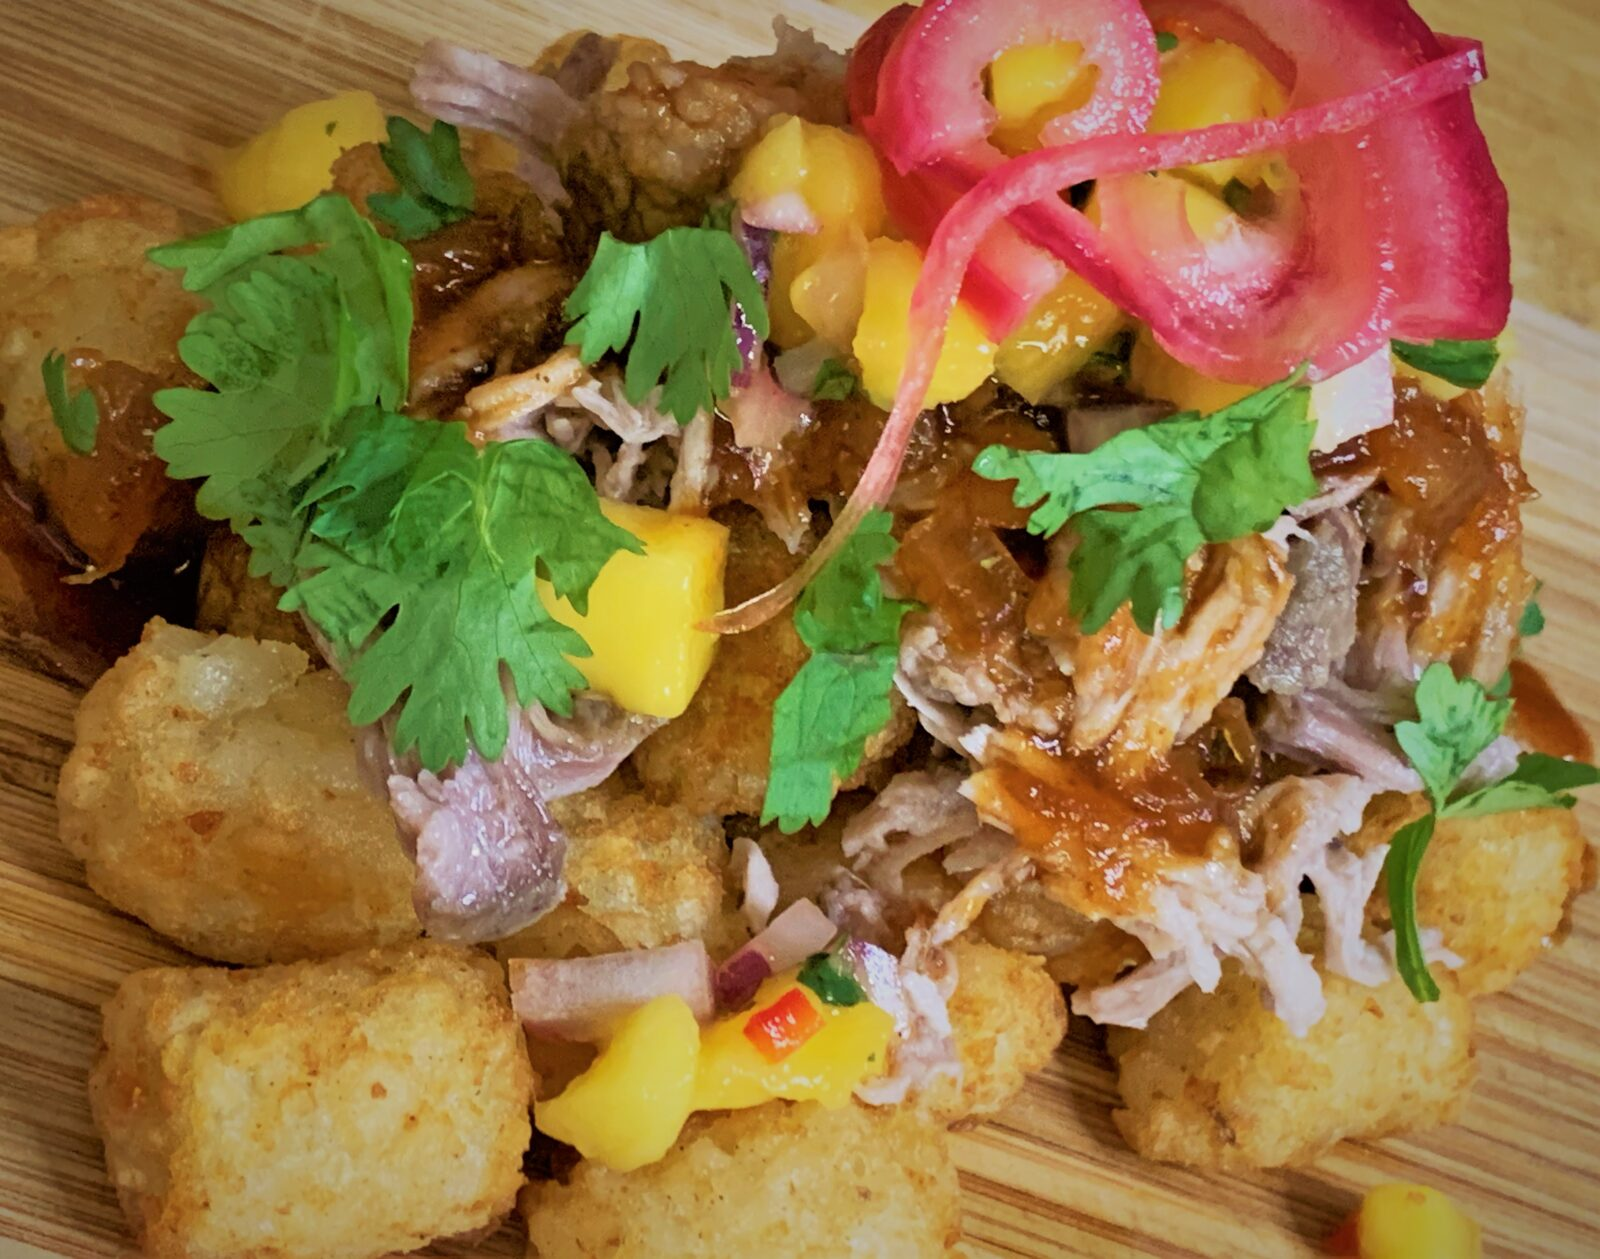 Our fully plated Kalua-Style Pulled Pork Tots with Polynesian BBQ Sauce & Mango Salsa